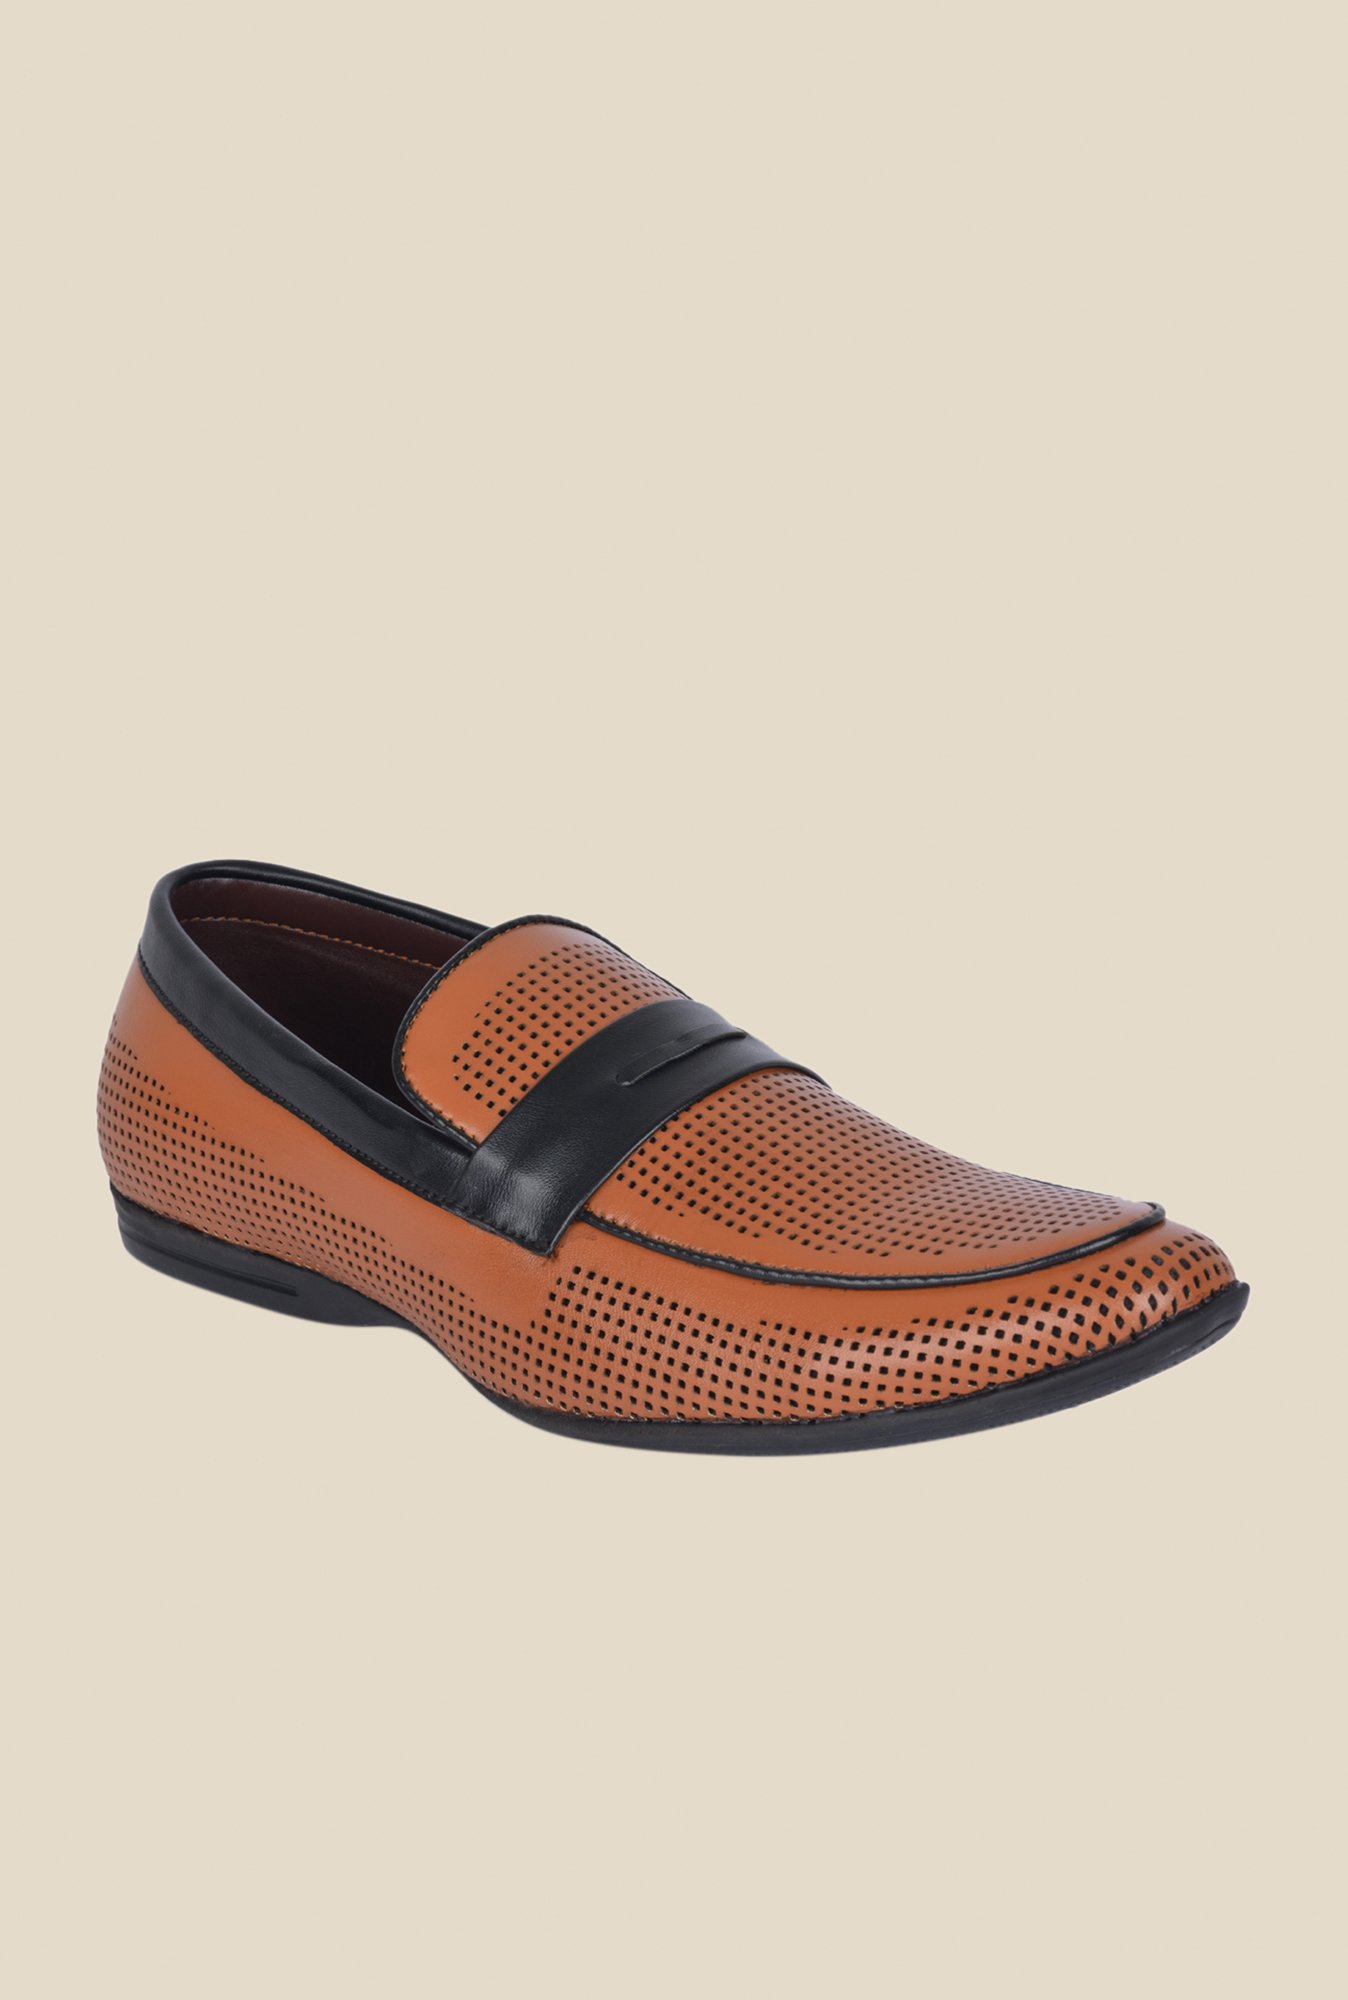 Wega Life Primo Tan Loafers